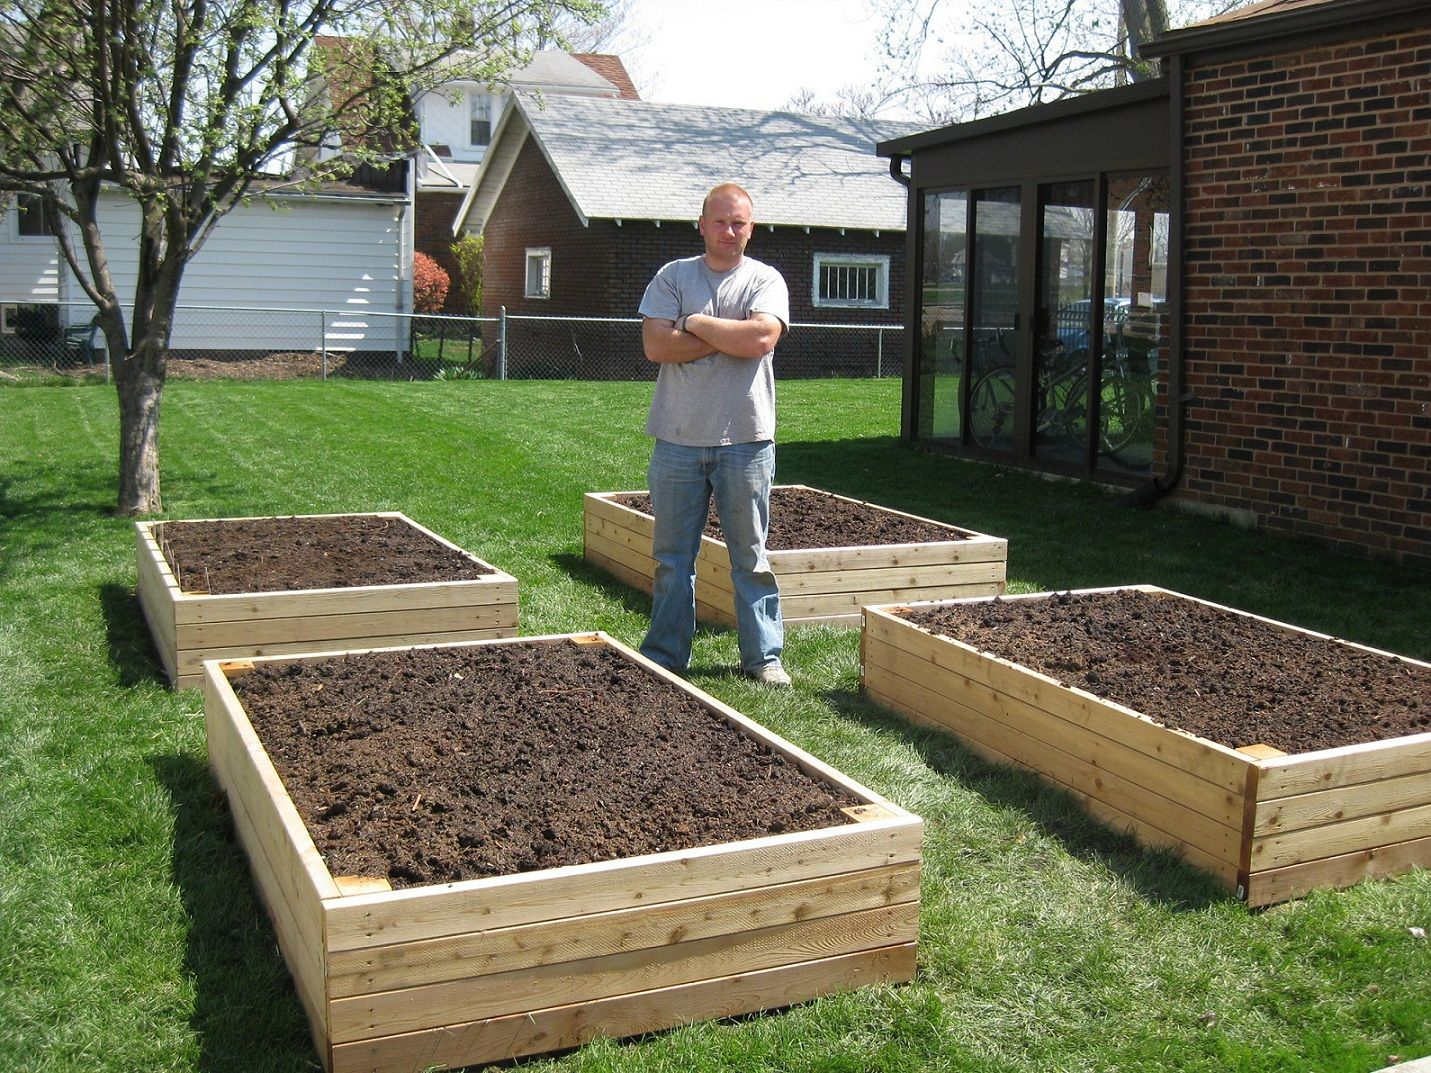 Pallet Vegetable Garden Box Ideas  Vegetable garden boxes, Pallet